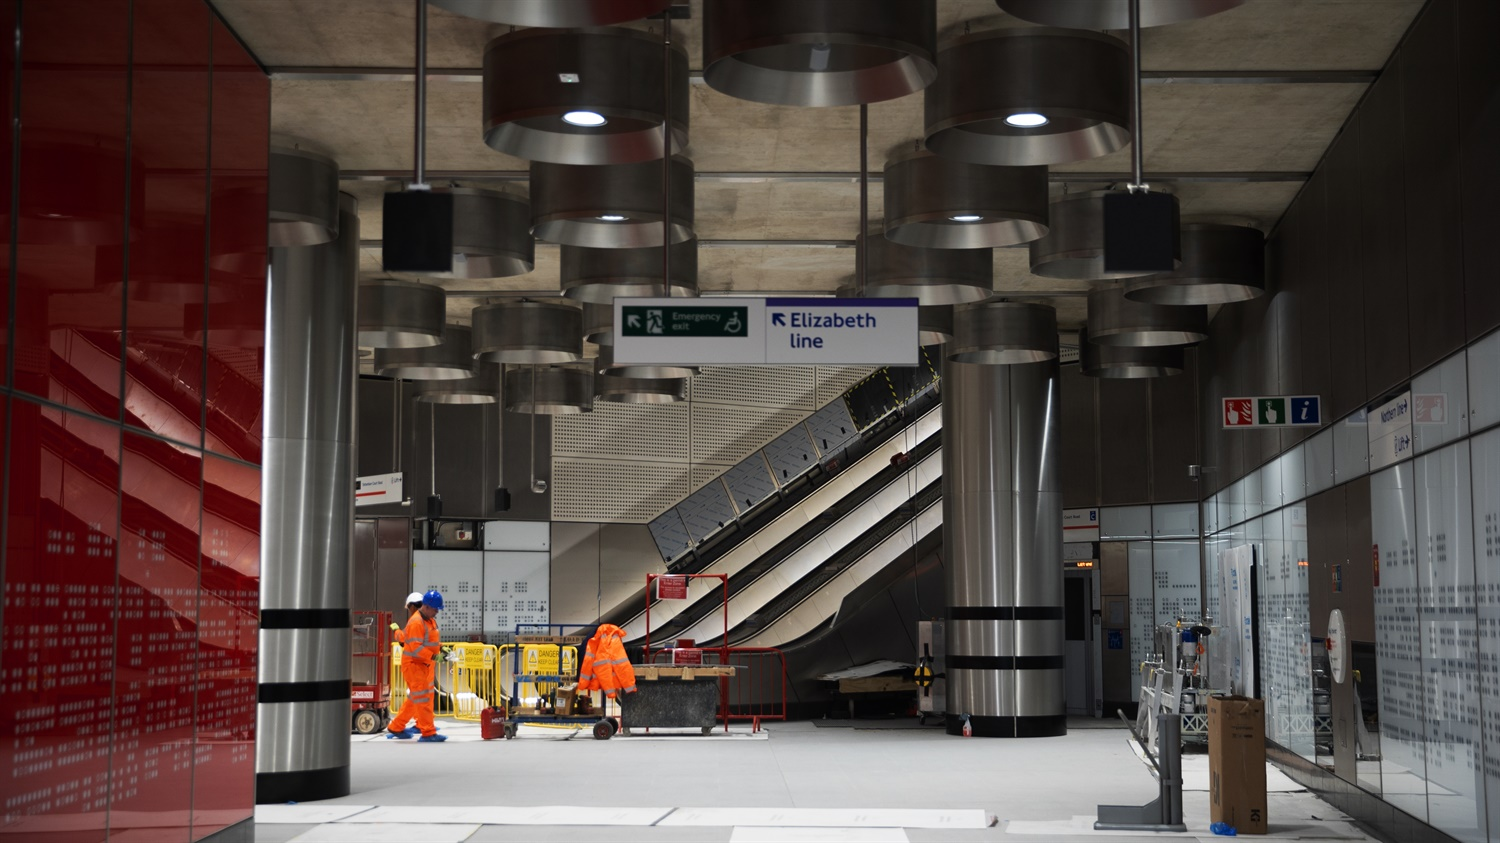 Crossrail to open by March 2021 as bosses confirm new timetable